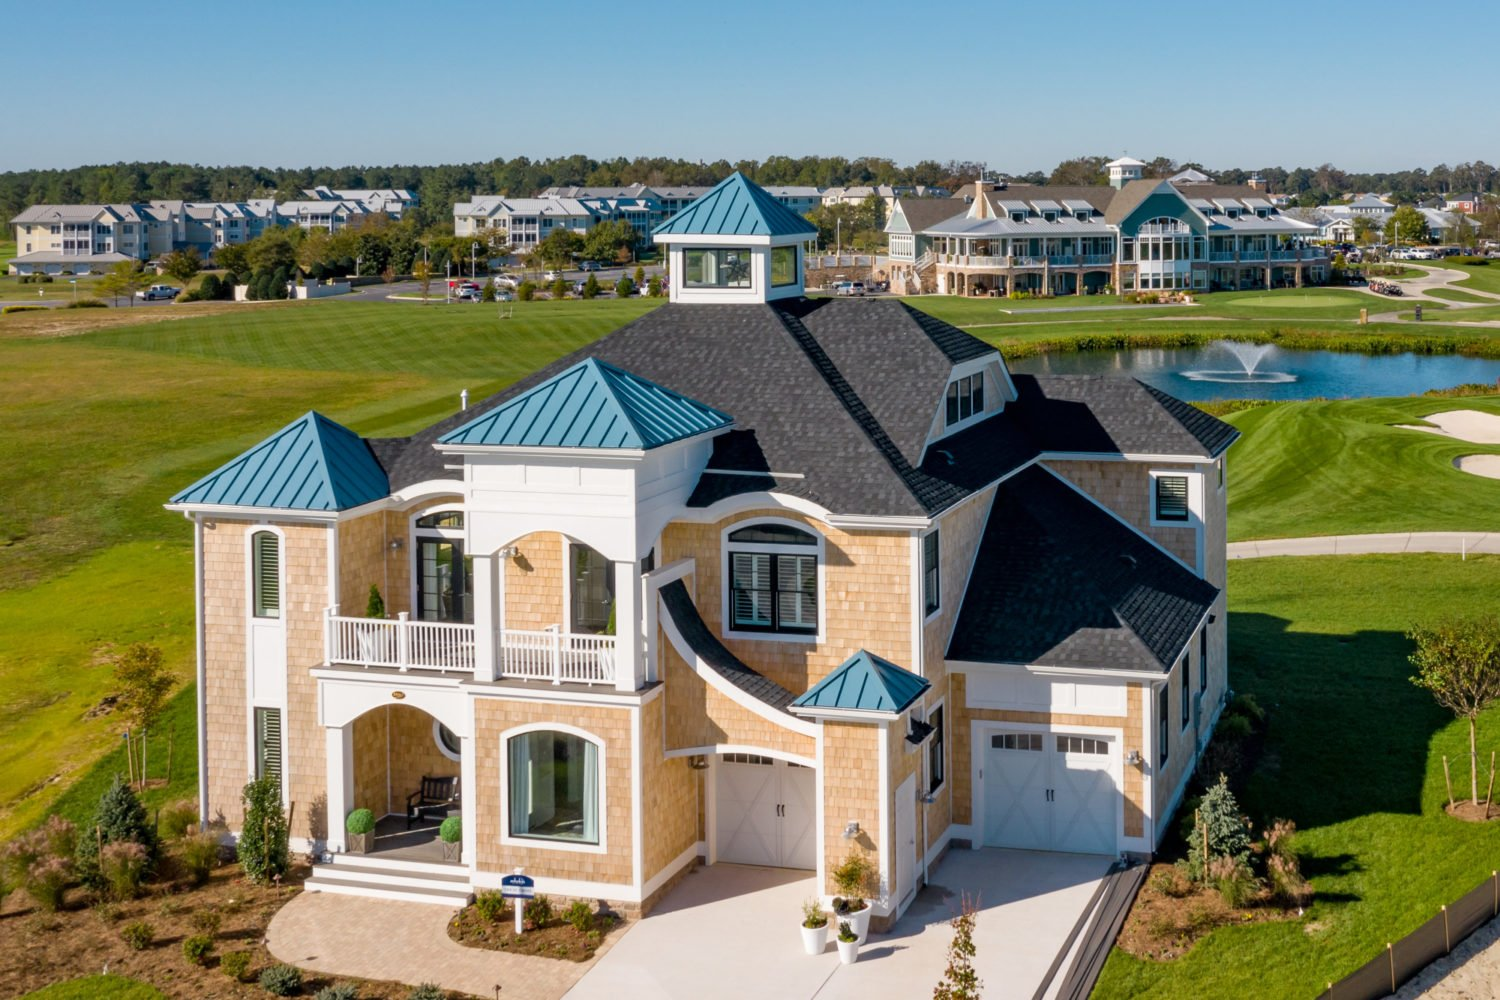 Rare golf-course view home available for move-in today in Coastal Delaware's premier community, The Peninsula